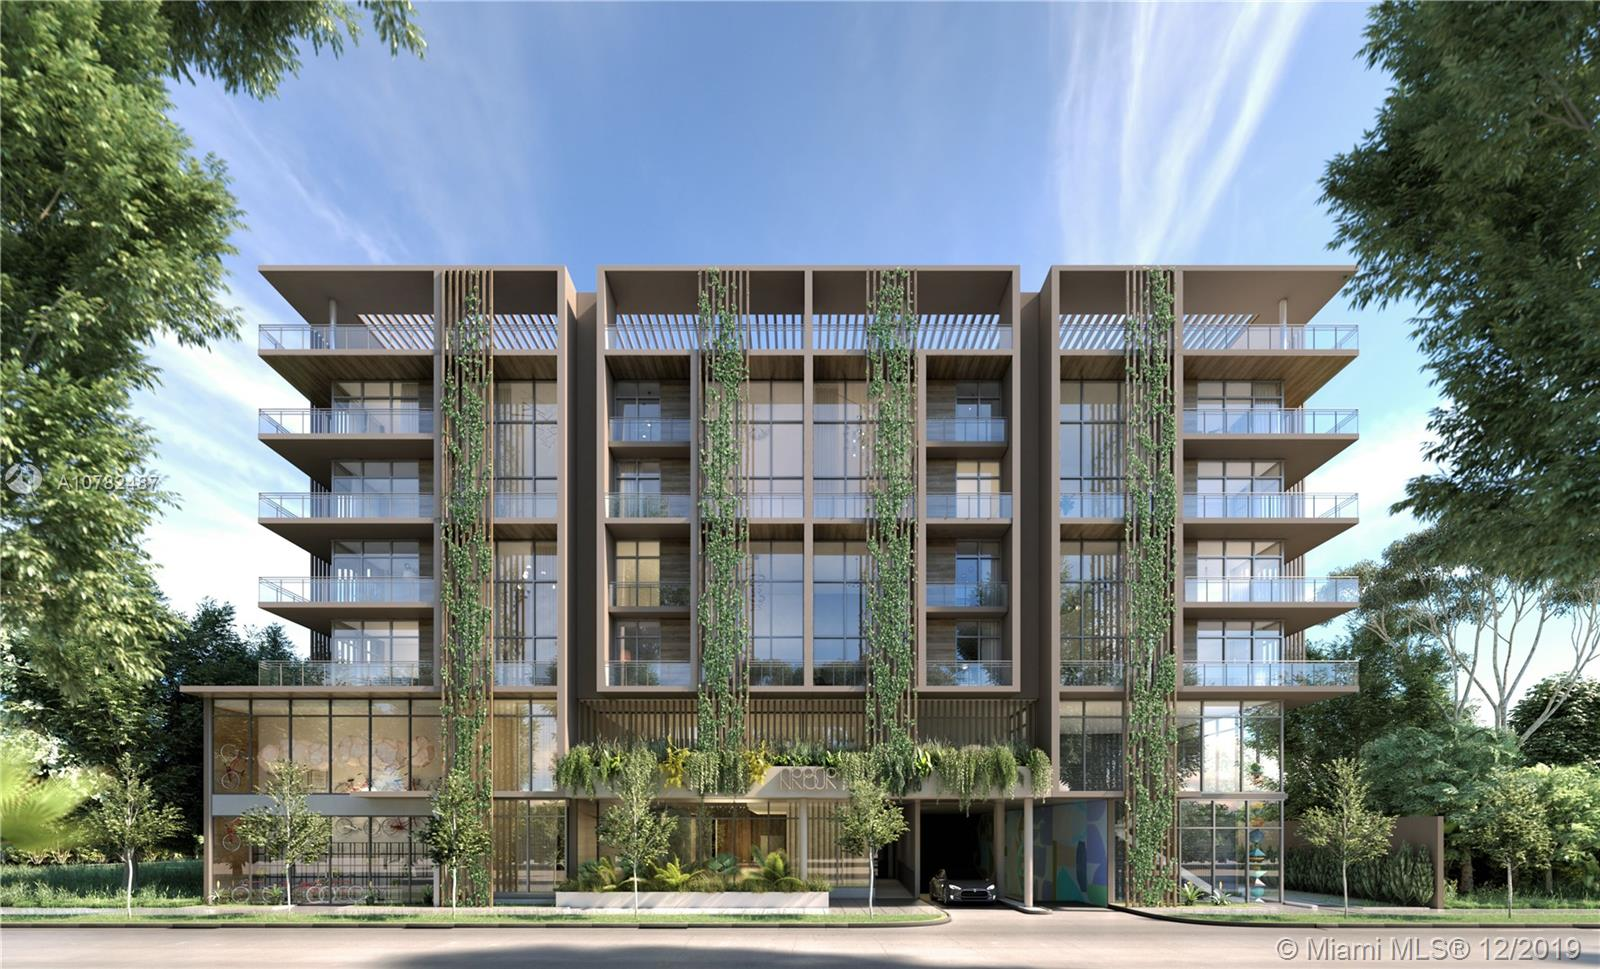 Arbor Residences is an exclusive oasis tucked away in the heart of Coconut Grove, walking distance to CocoWalk, Mayfair Shops, and waterfront living. Custom finishes in all 52 units of this boutique luxury project. Featuring Balvi Quartzite counters and white oak cabinets in the kitchens along with extraordinary Blue Ocean travertine and Hansgrohe fixtures in the bathrooms. Amenities include concierge, fitness center, pool, social club lounge, summer kitchens, & private dog park, just to name a few.